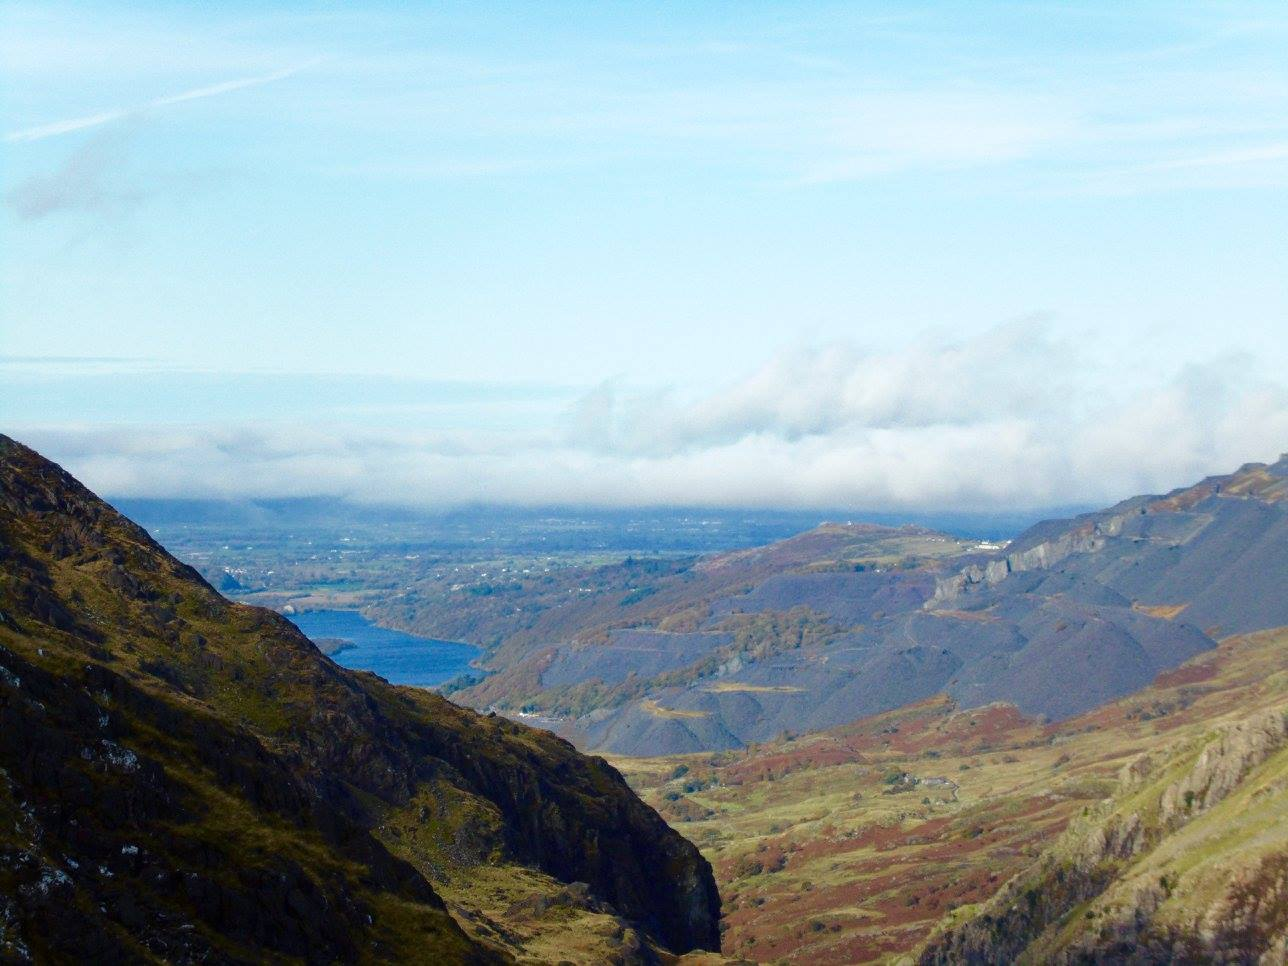 The stunning views, looking towards Bangor in Wales, from Snowdon